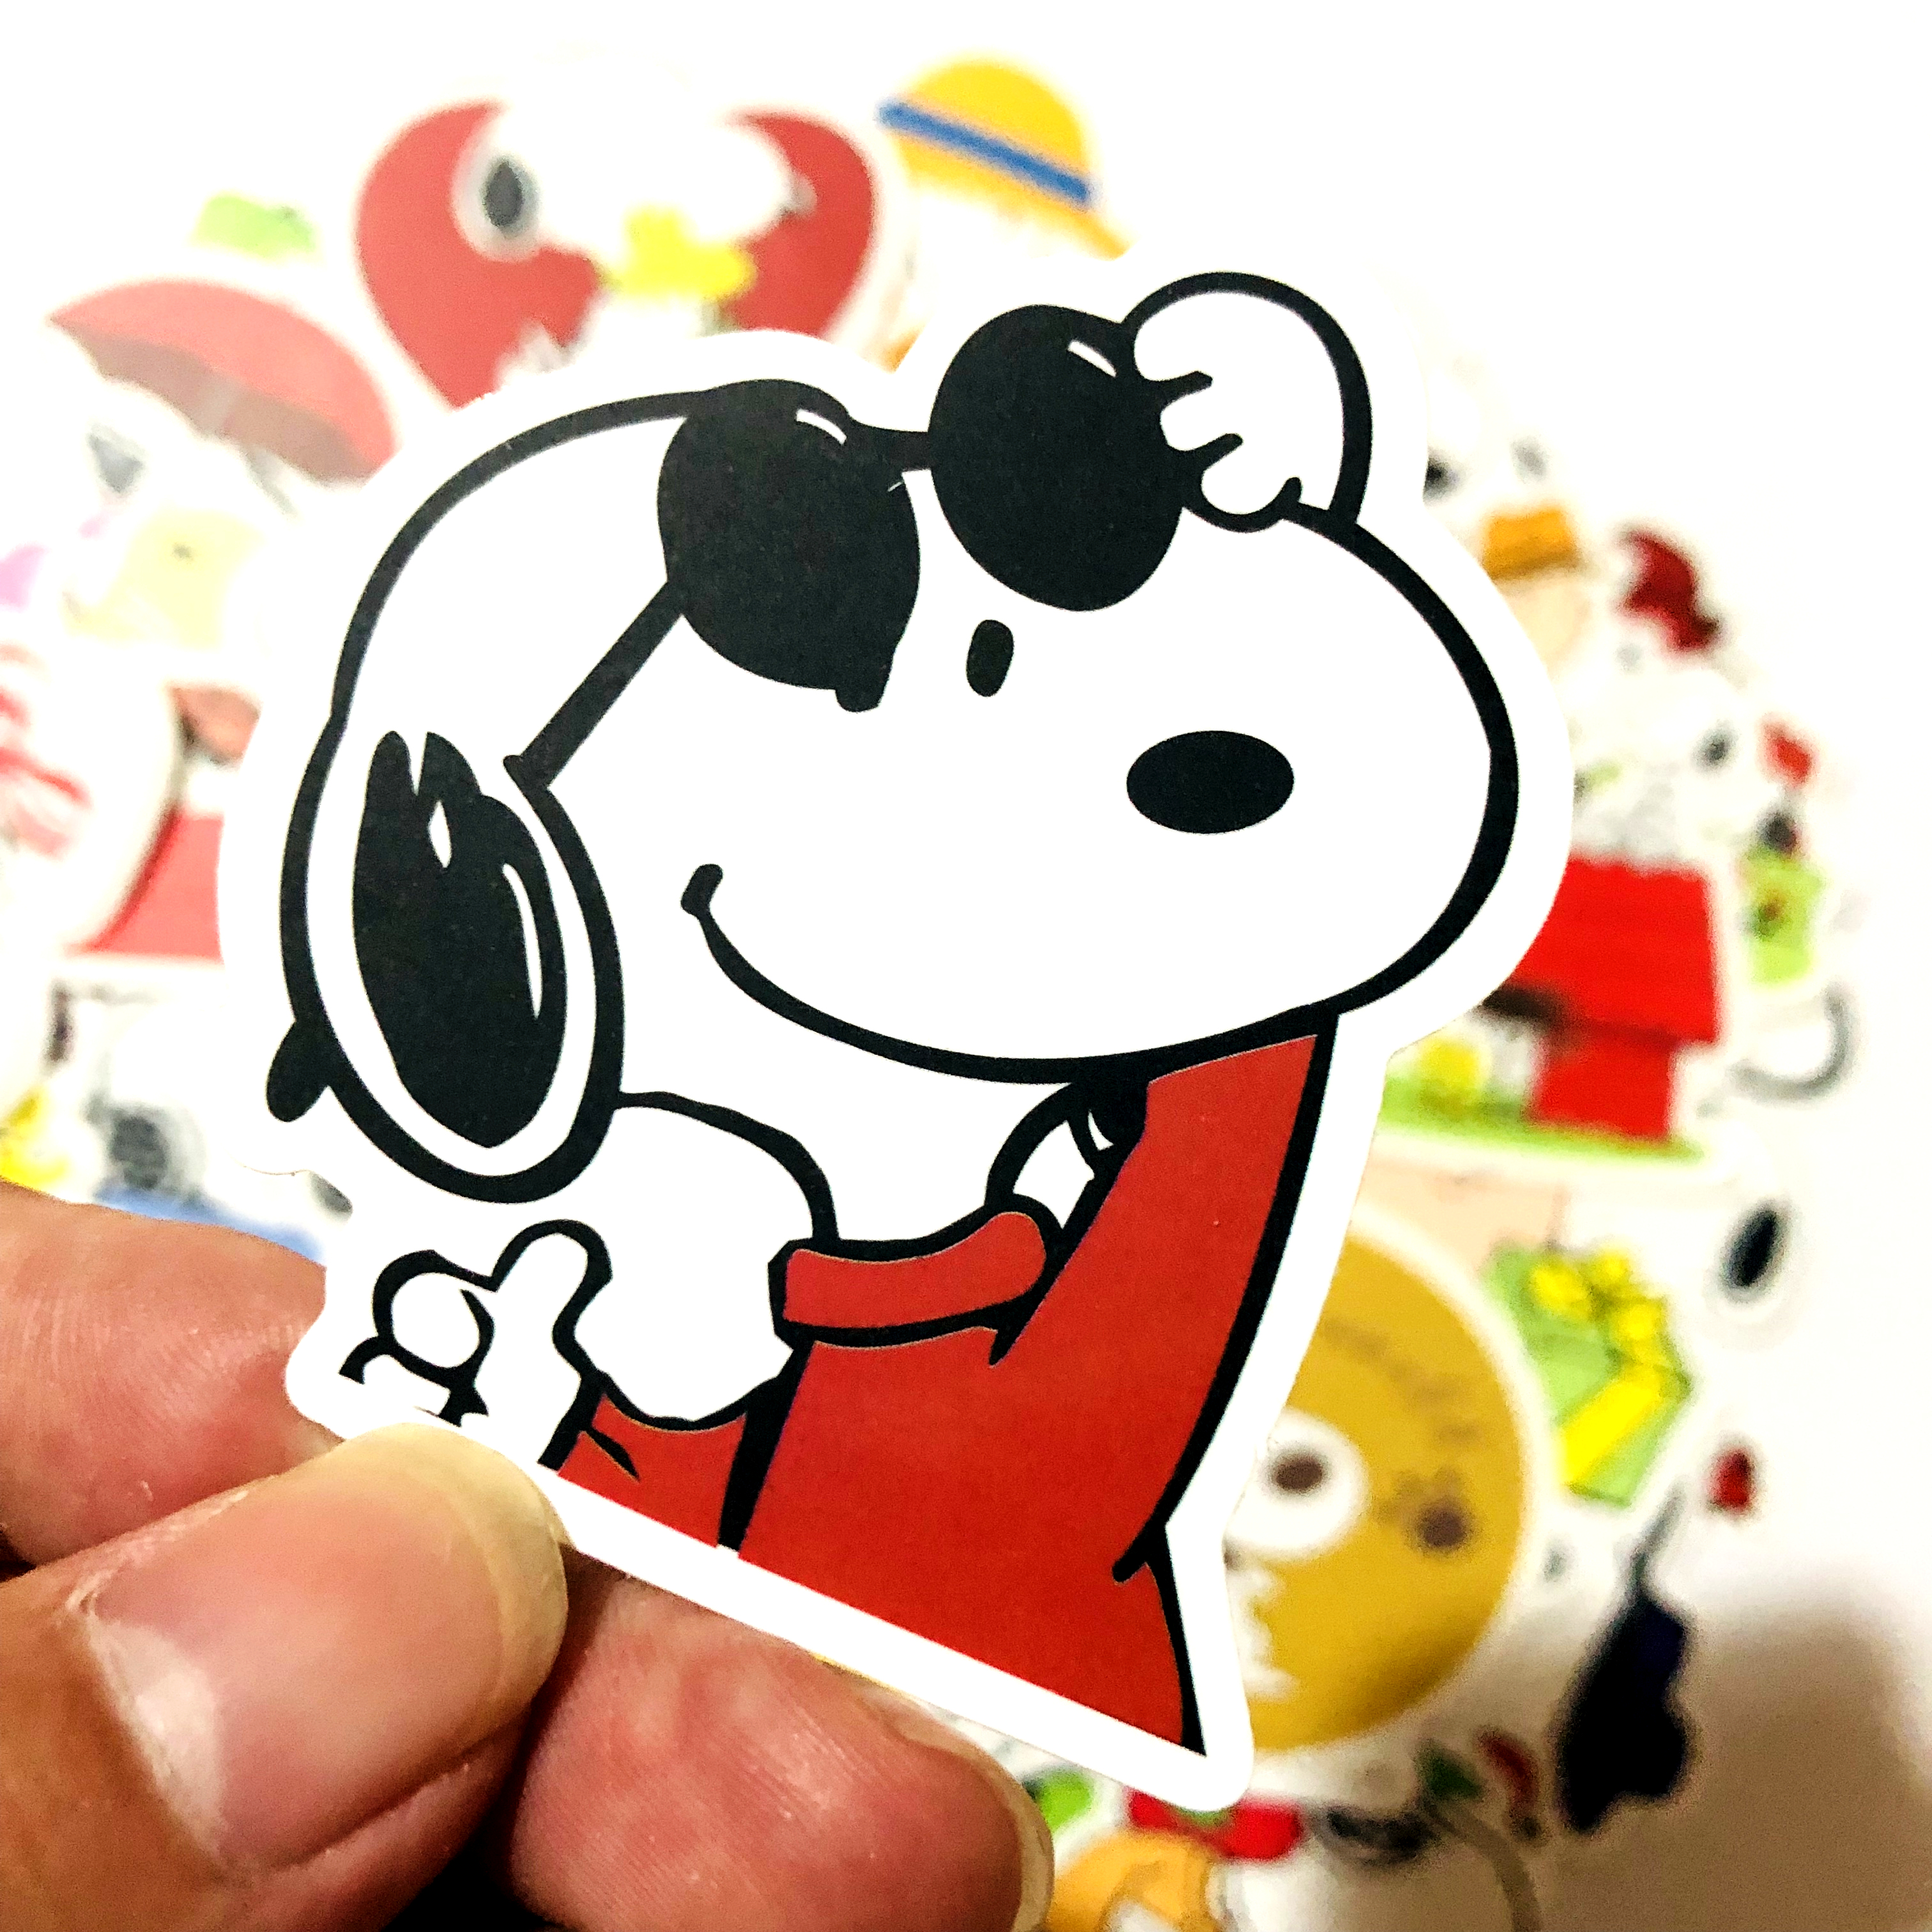 Image 5 - 50/100pcs cartoon Snoopy stickers For Laptop Skateboard Luggage Decal Office Toy Appliances netbook waterproof stickers-in Stickers from Toys & Hobbies